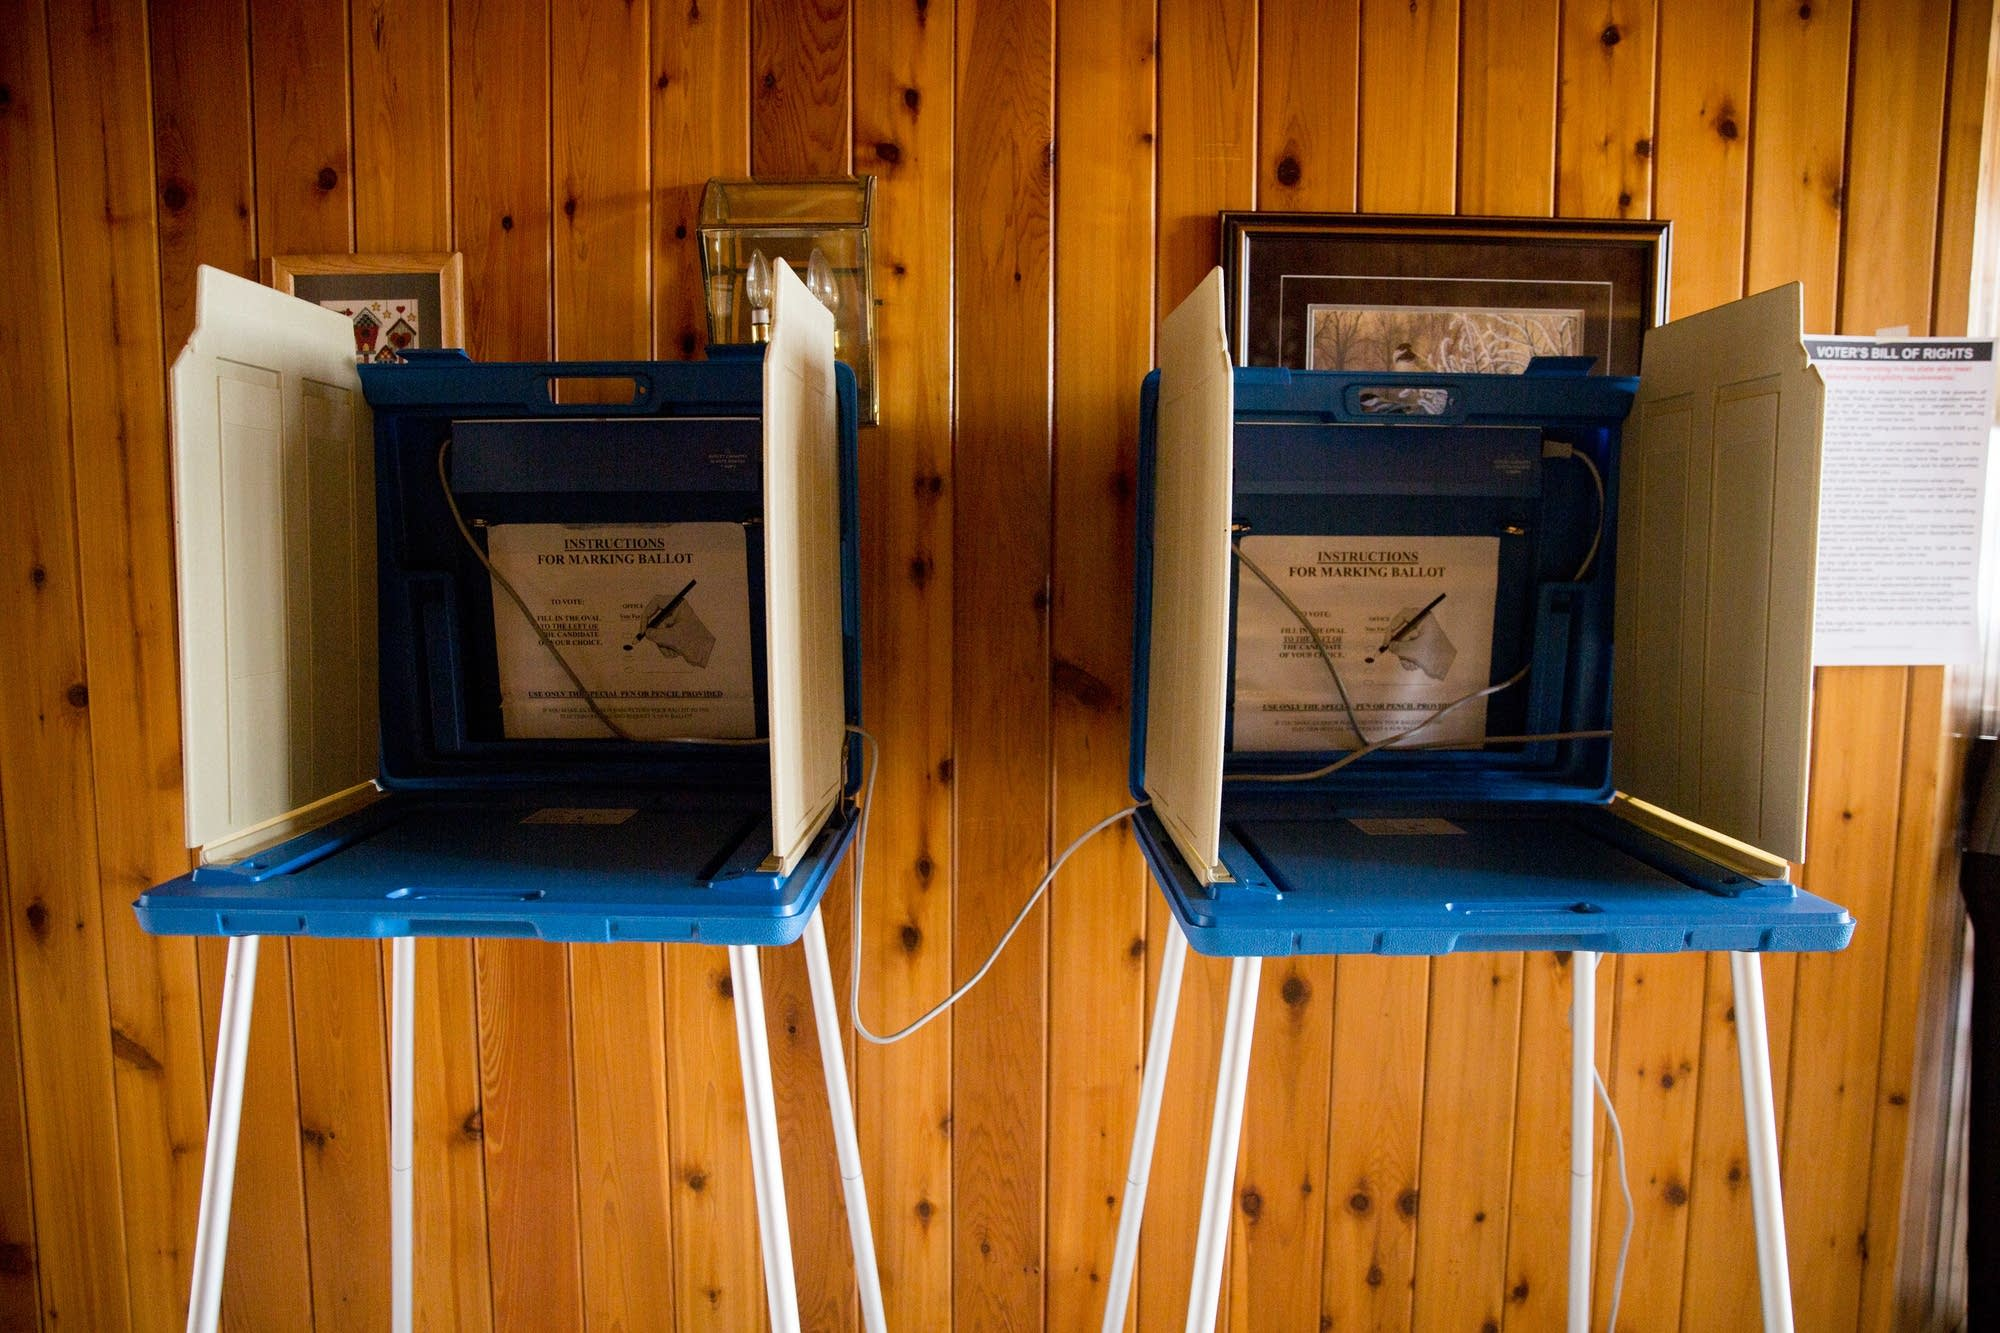 Voting booths in the LaBore's home.